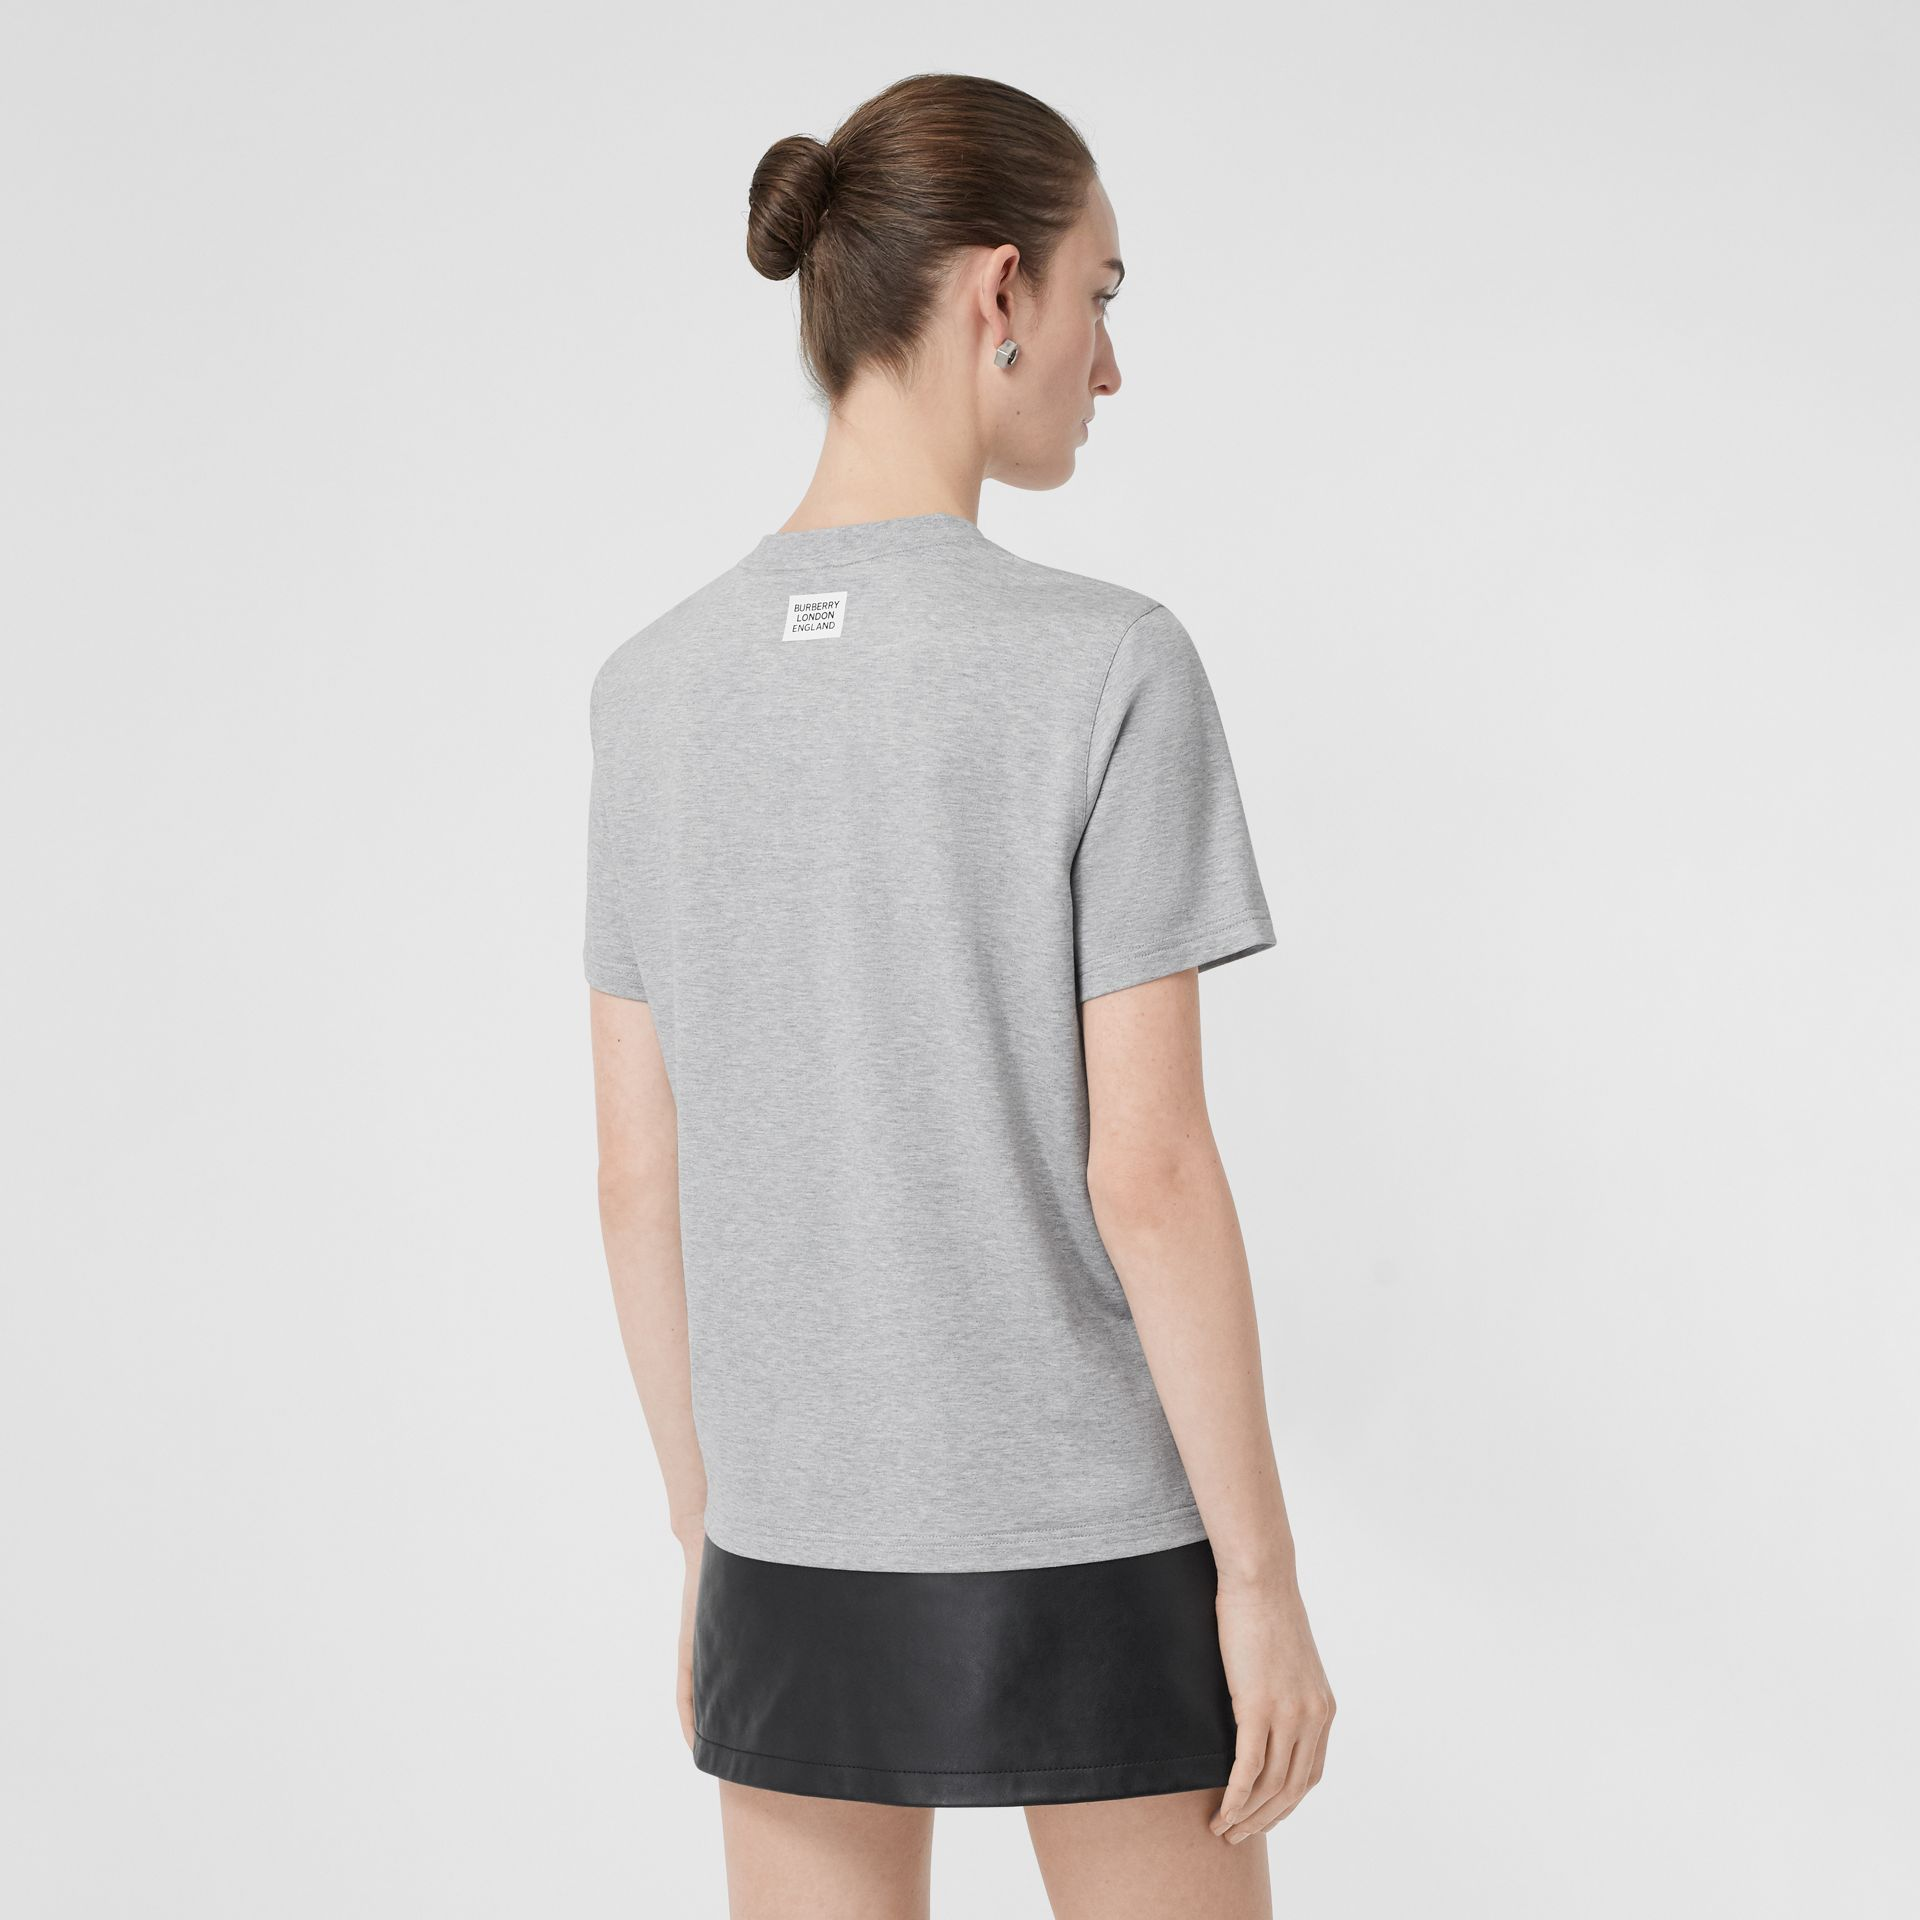 Montage Print Cotton T-shirt in Pale Grey Melange - Women | Burberry - gallery image 2